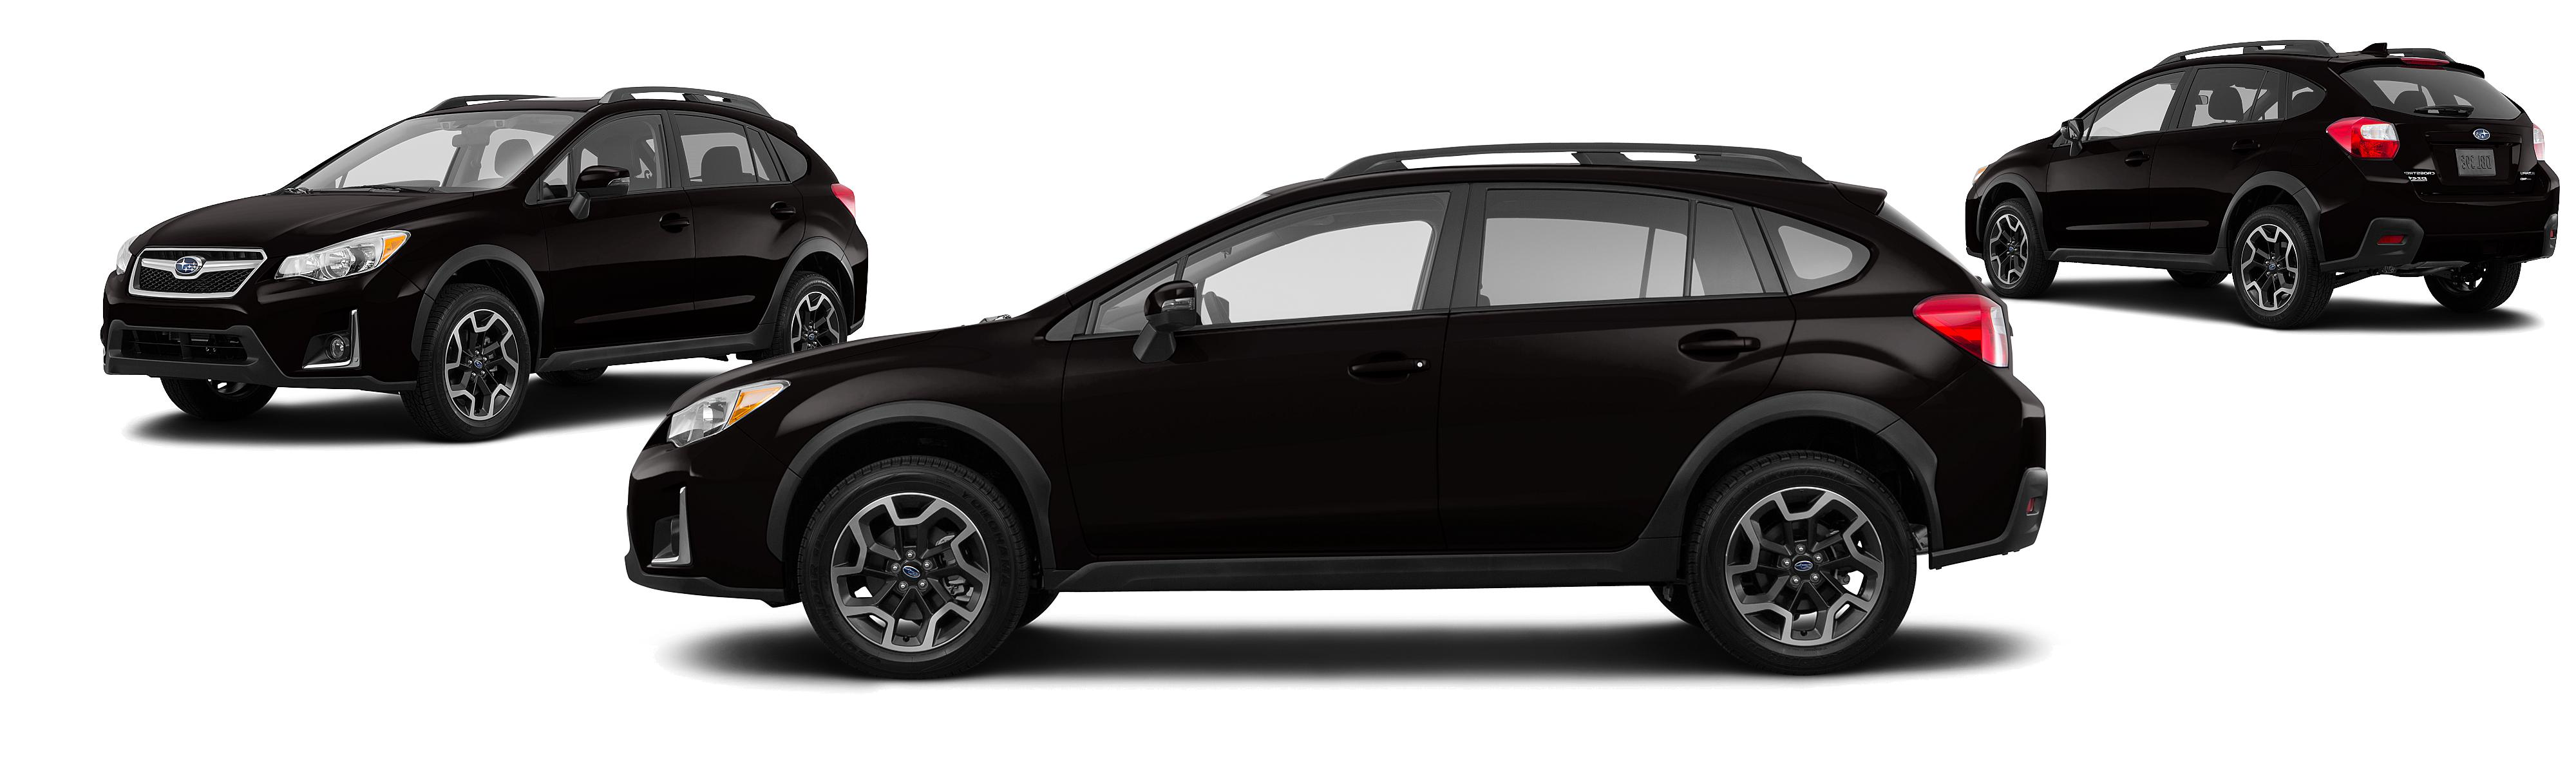 2017 Subaru Crosstrek Awd 2 0i Limited 4dr Crossover Research Groovecar